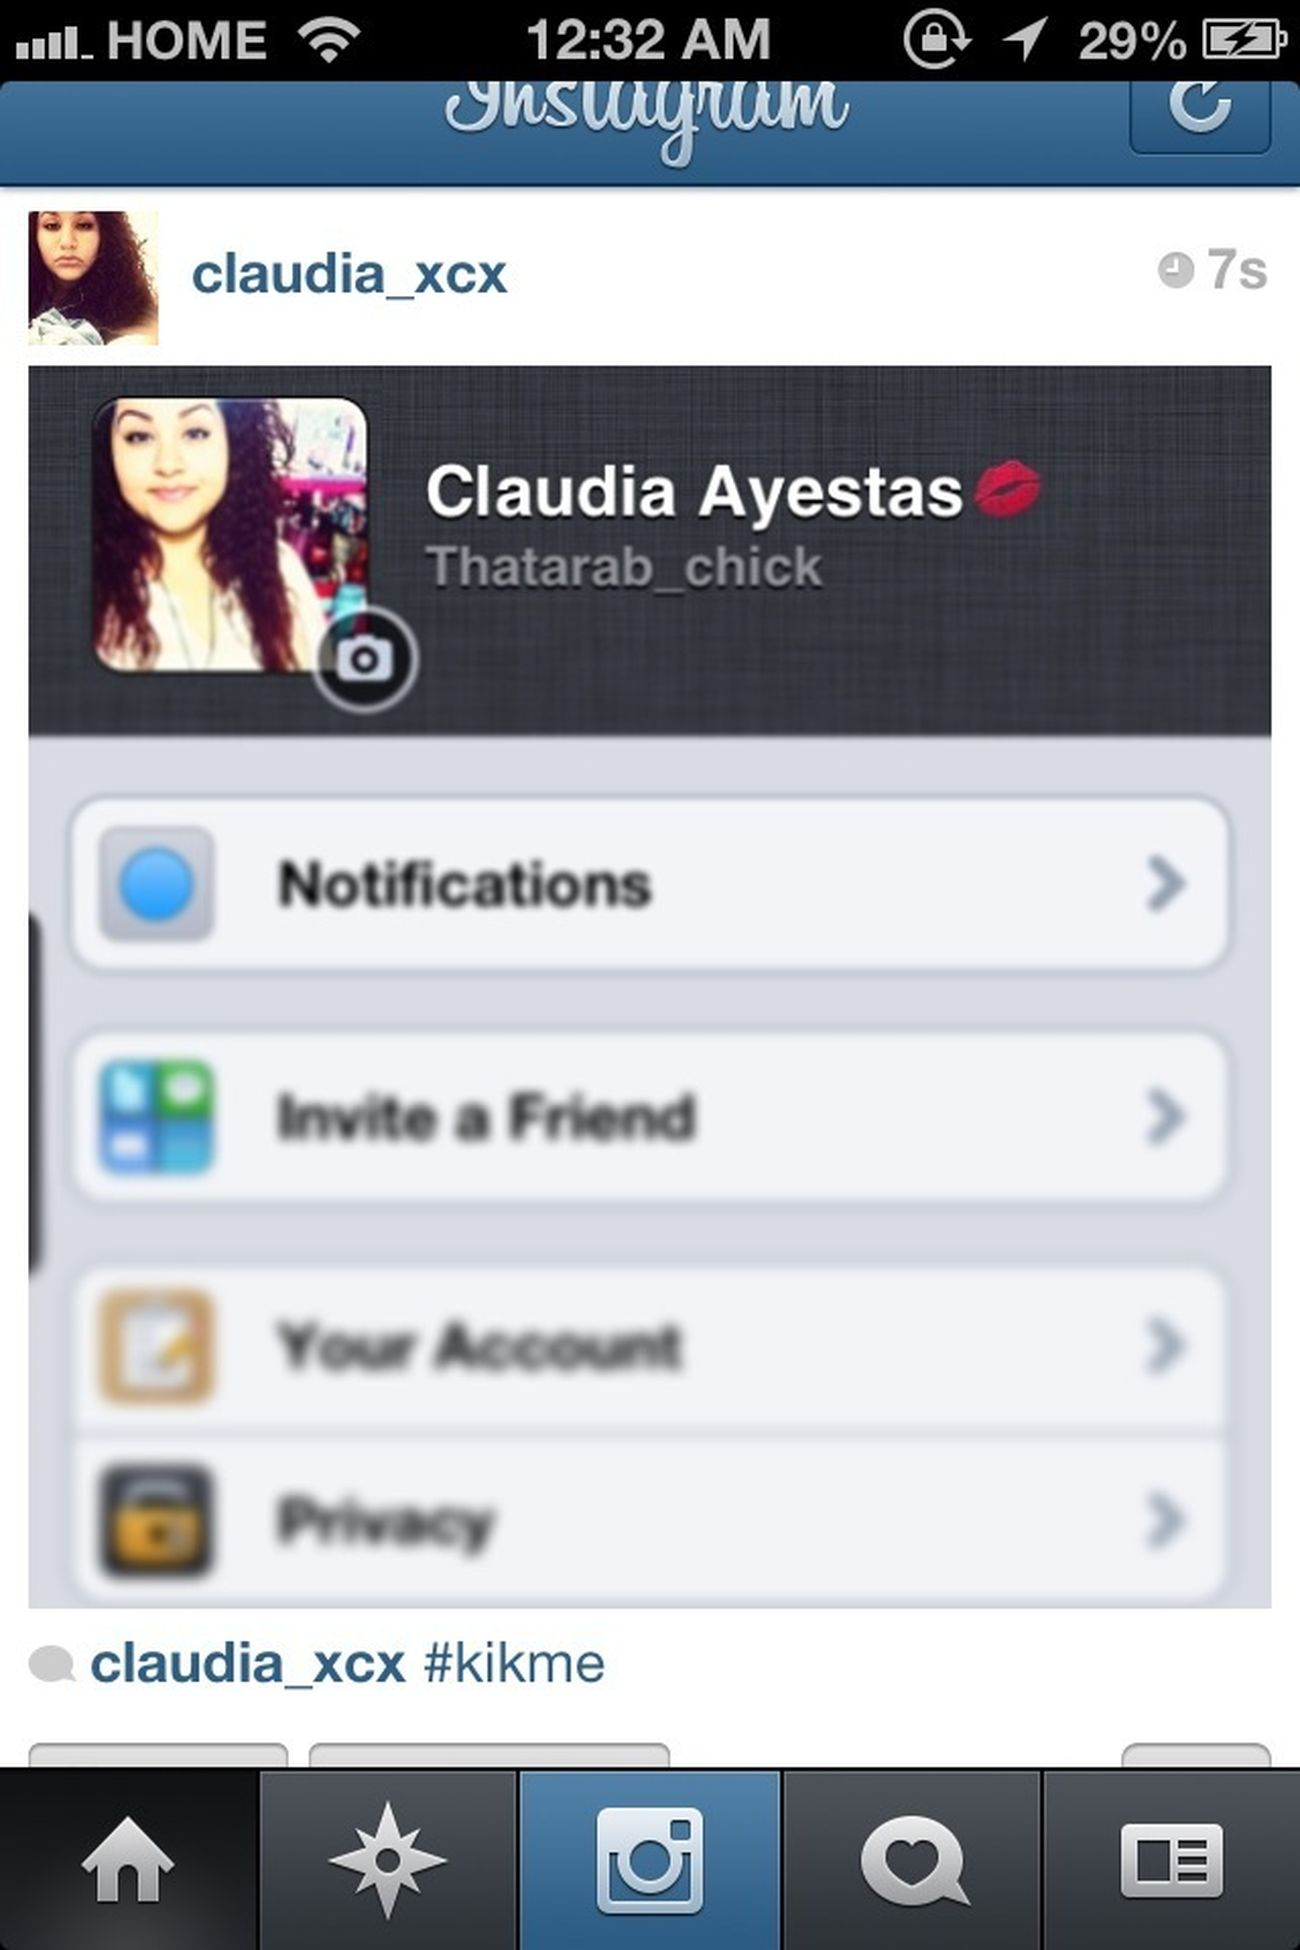 Kik me & follow ya girl on Instagram while ya at it